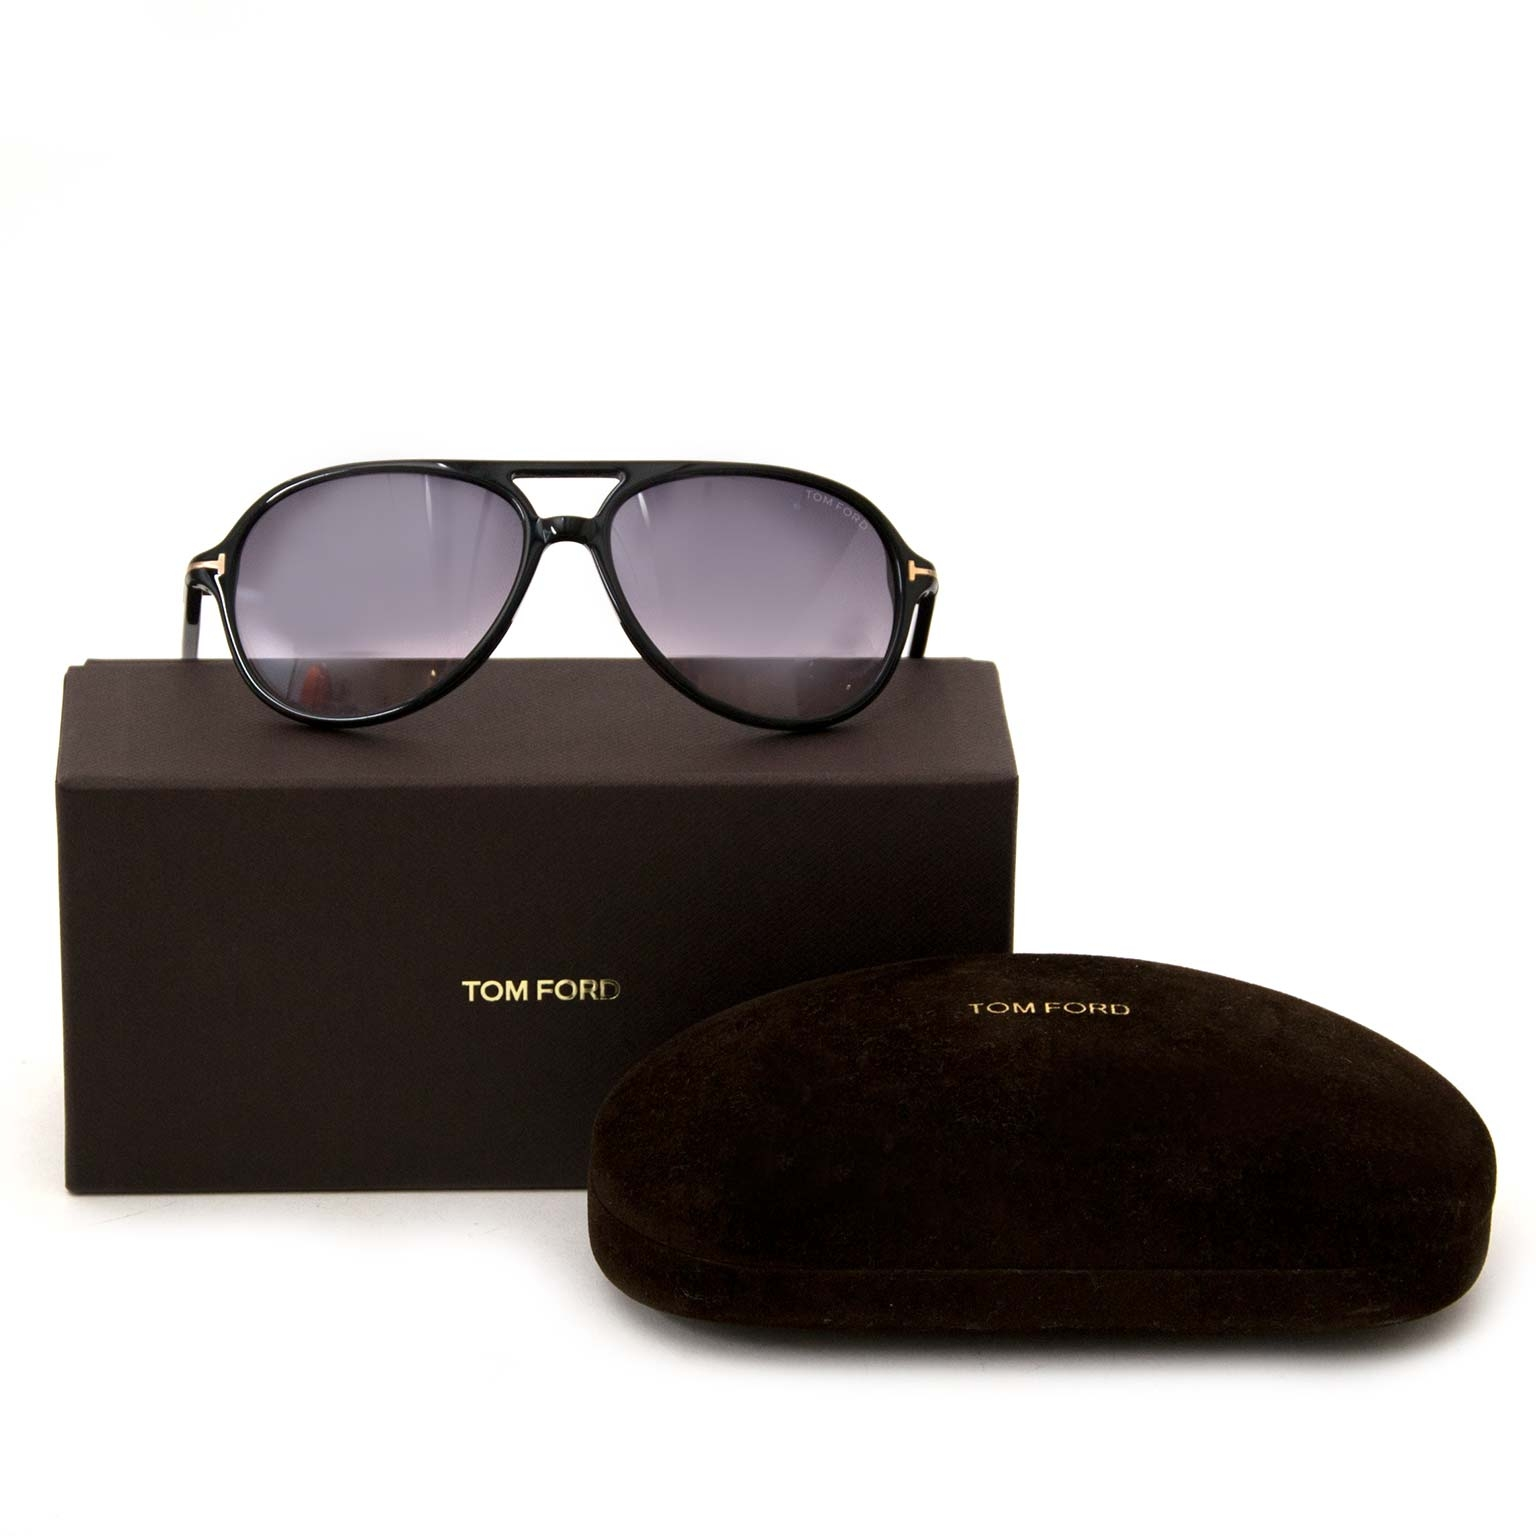 ed59cedce4c3 ... Buy tom ford jared aviator sunglasses at labellov vintage fashion  webshop